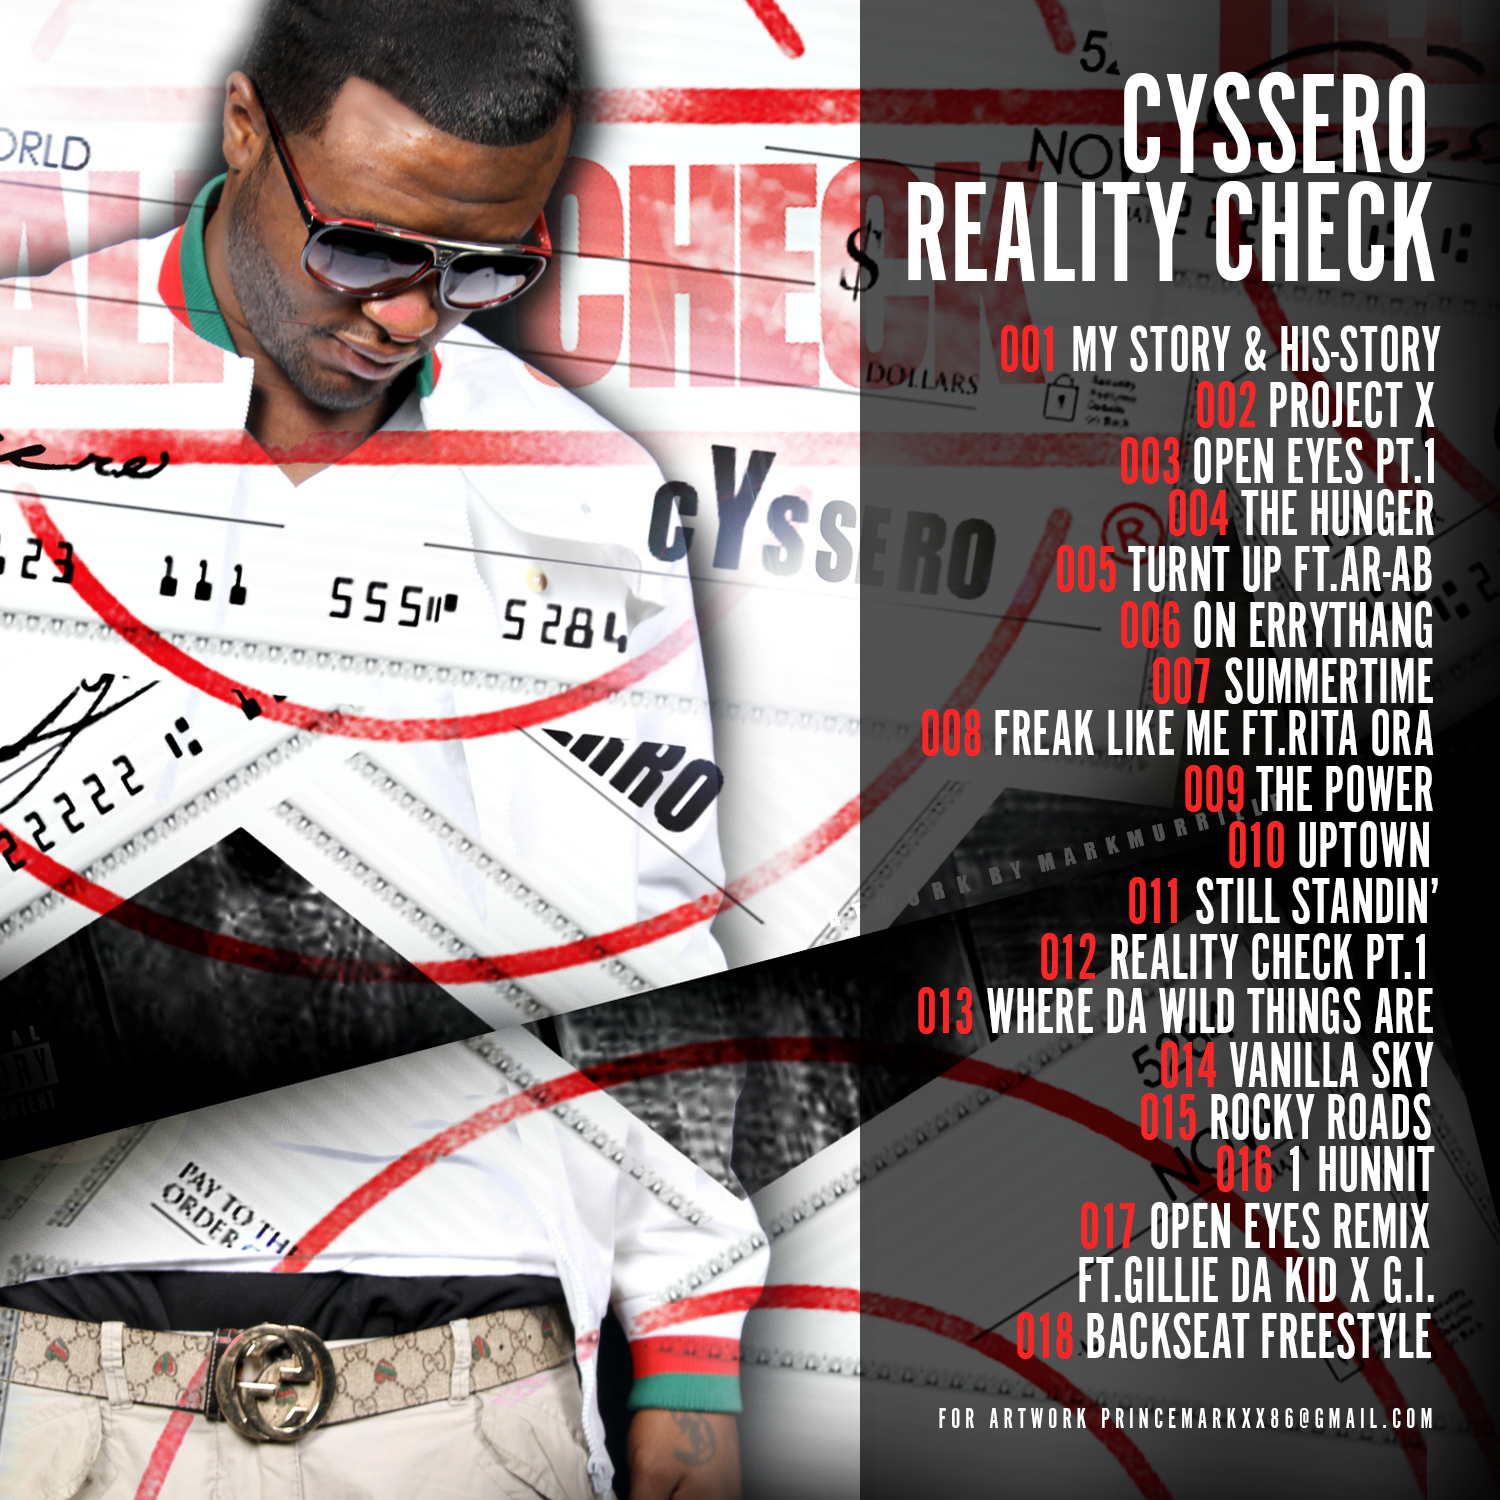 cyssero-reality-check-mixtape-HHS1987-2013-tracklist Cyssero - Reality Check (Mixtape)